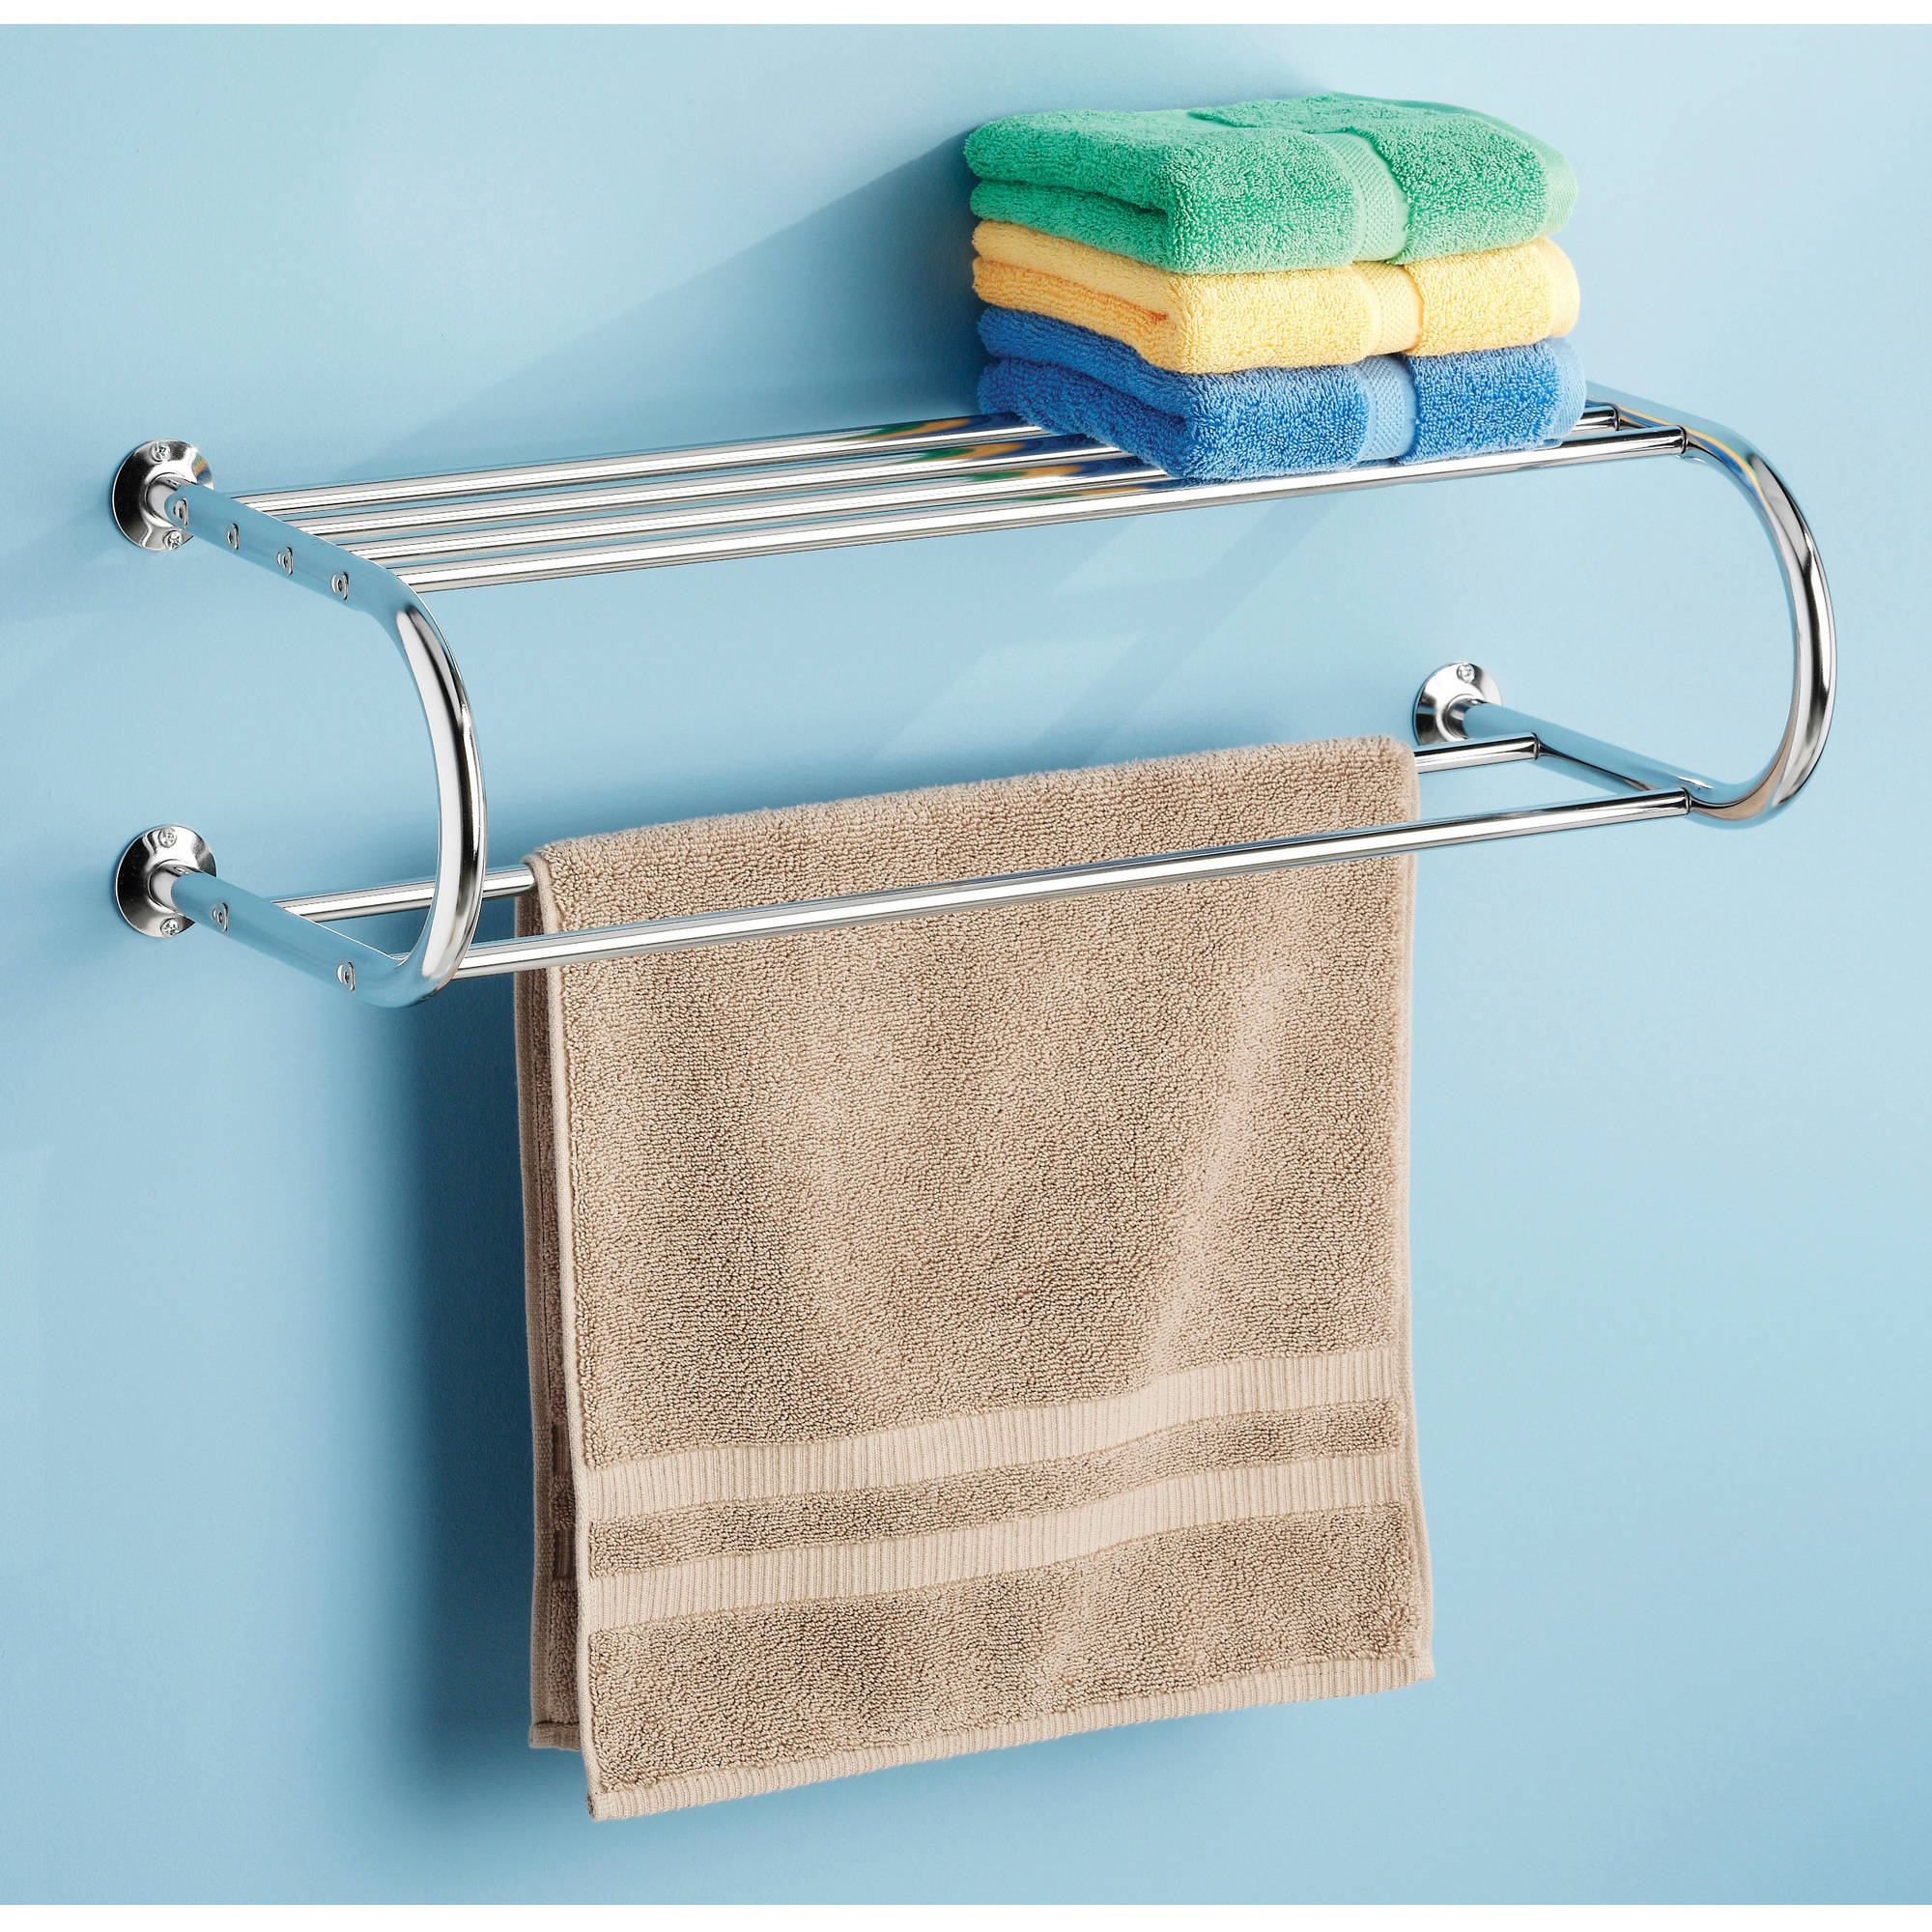 Whitmor Chrome Towel Rack with Shelf